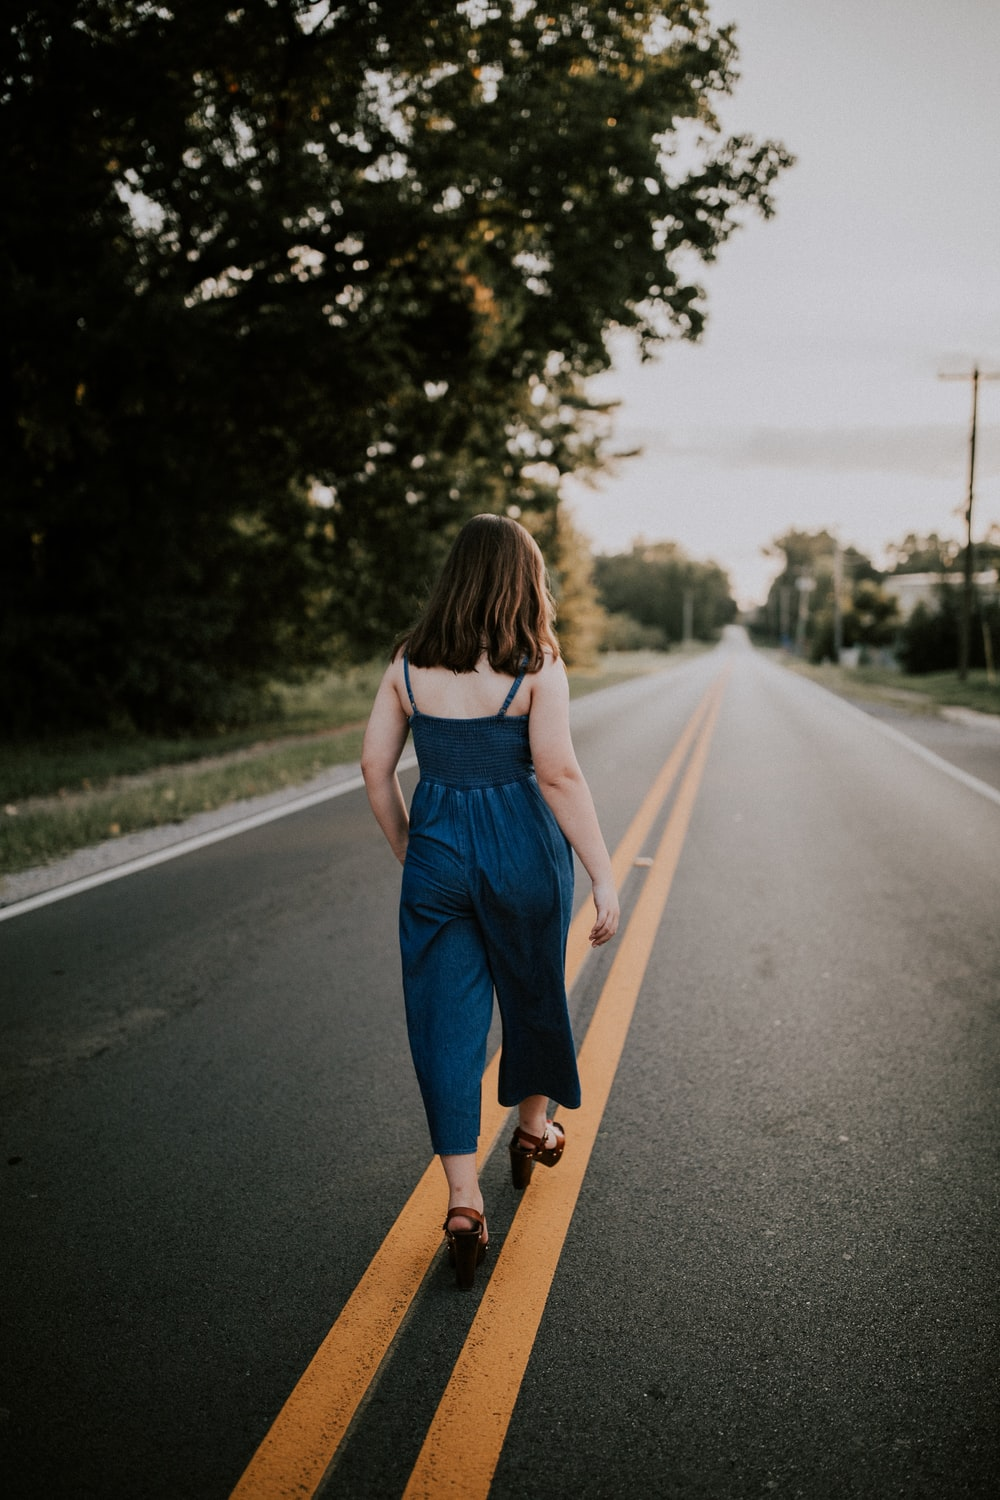 woman walking in the middle of black asphalt road during daytime